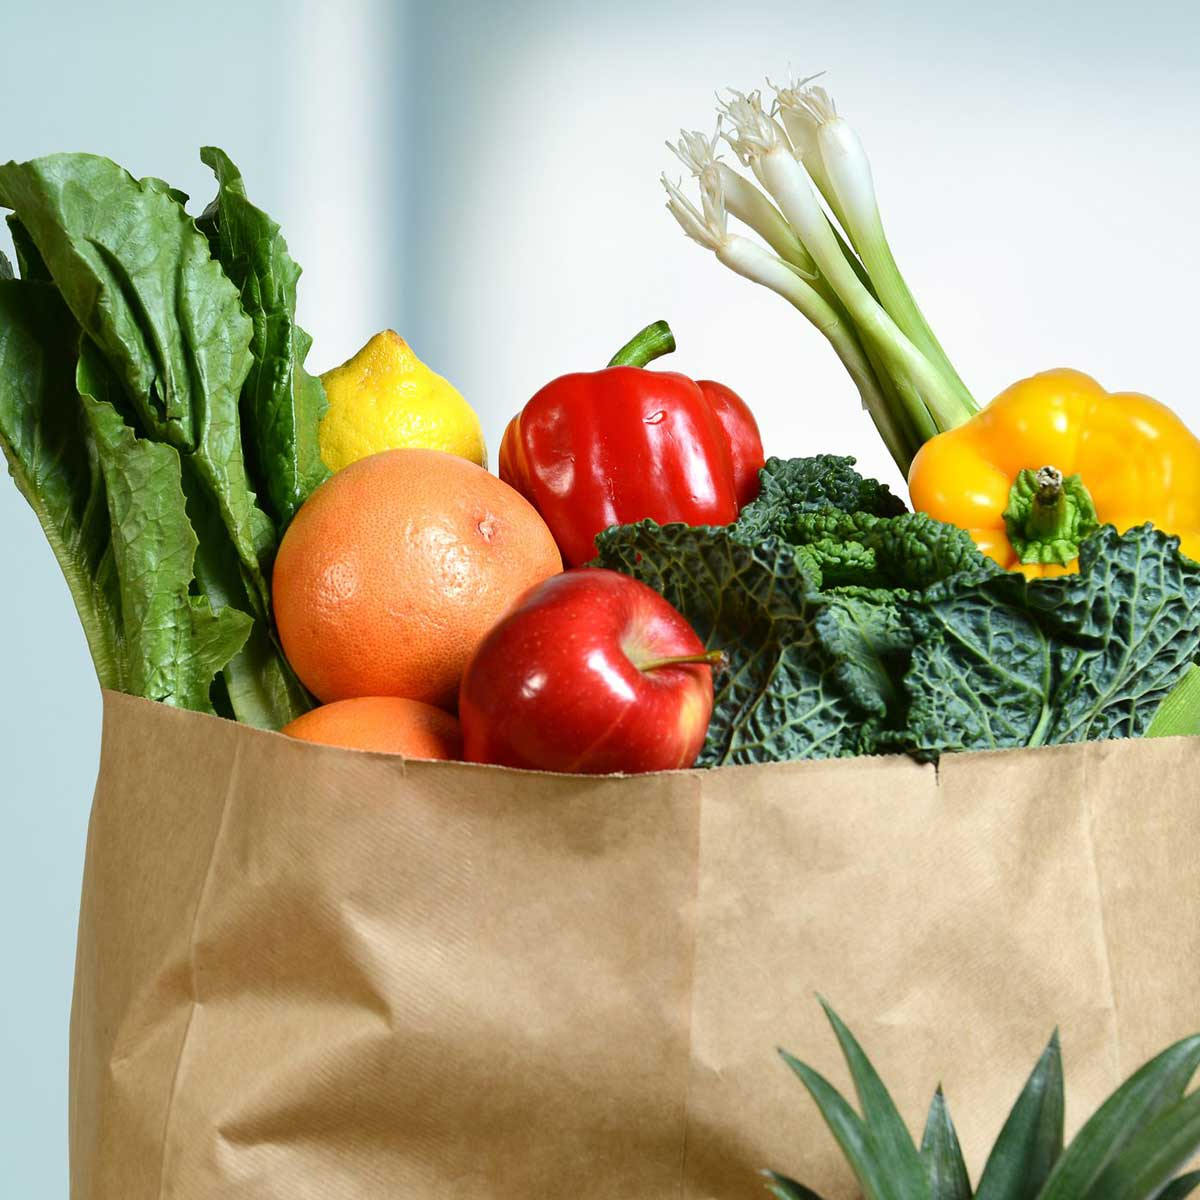 Why Should You be Buying Groceries and Fresh Produce Online